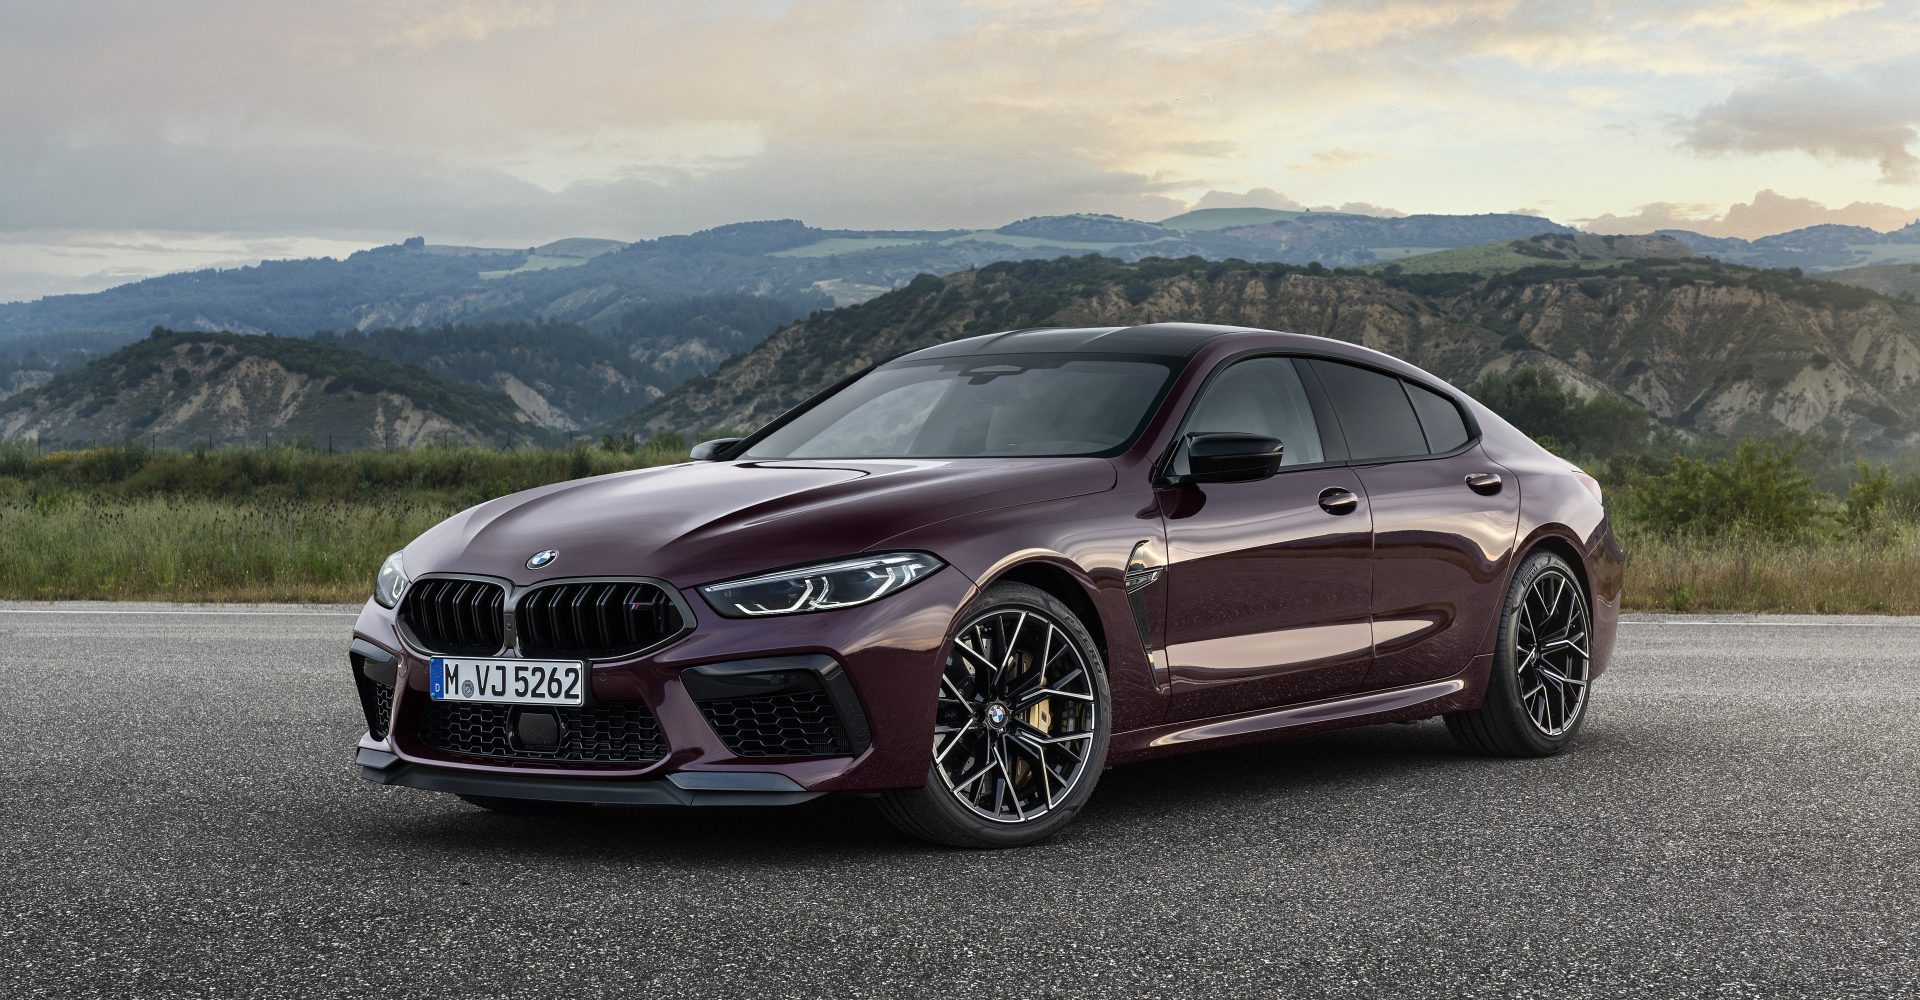 Four-door BMW M8 Gran Coupe revealed